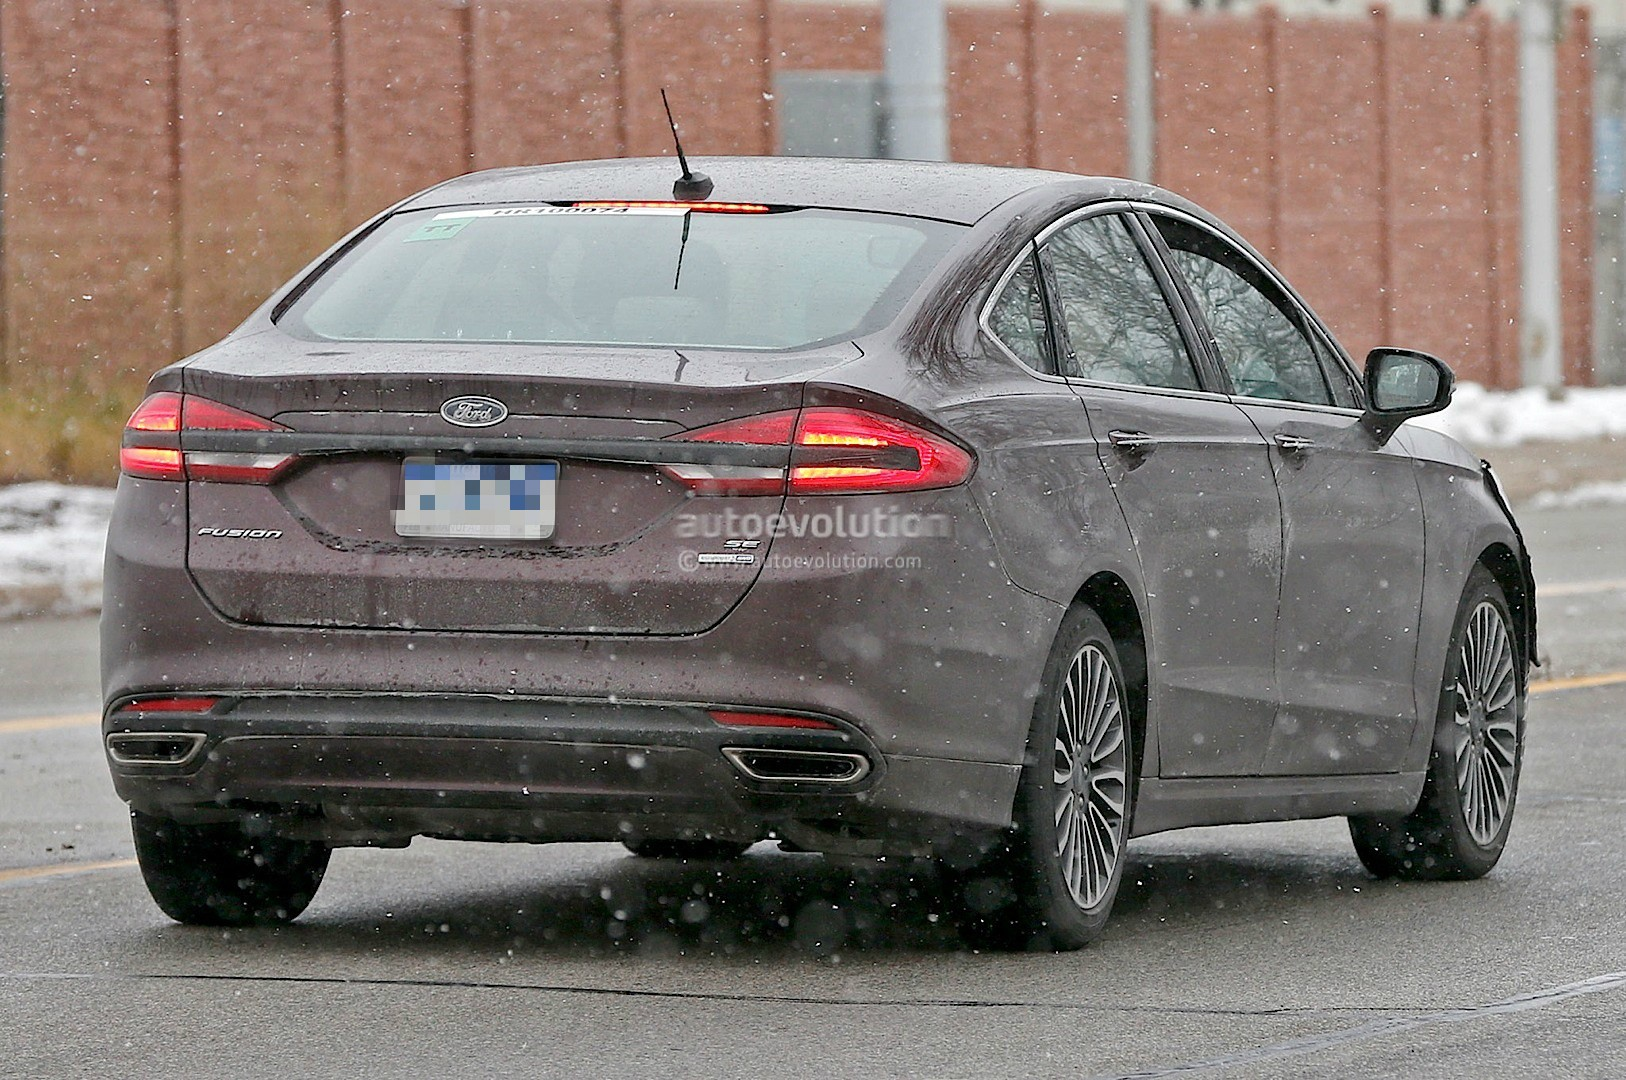 2017 ford fusion mondeo loses some camo spyshots show. Black Bedroom Furniture Sets. Home Design Ideas